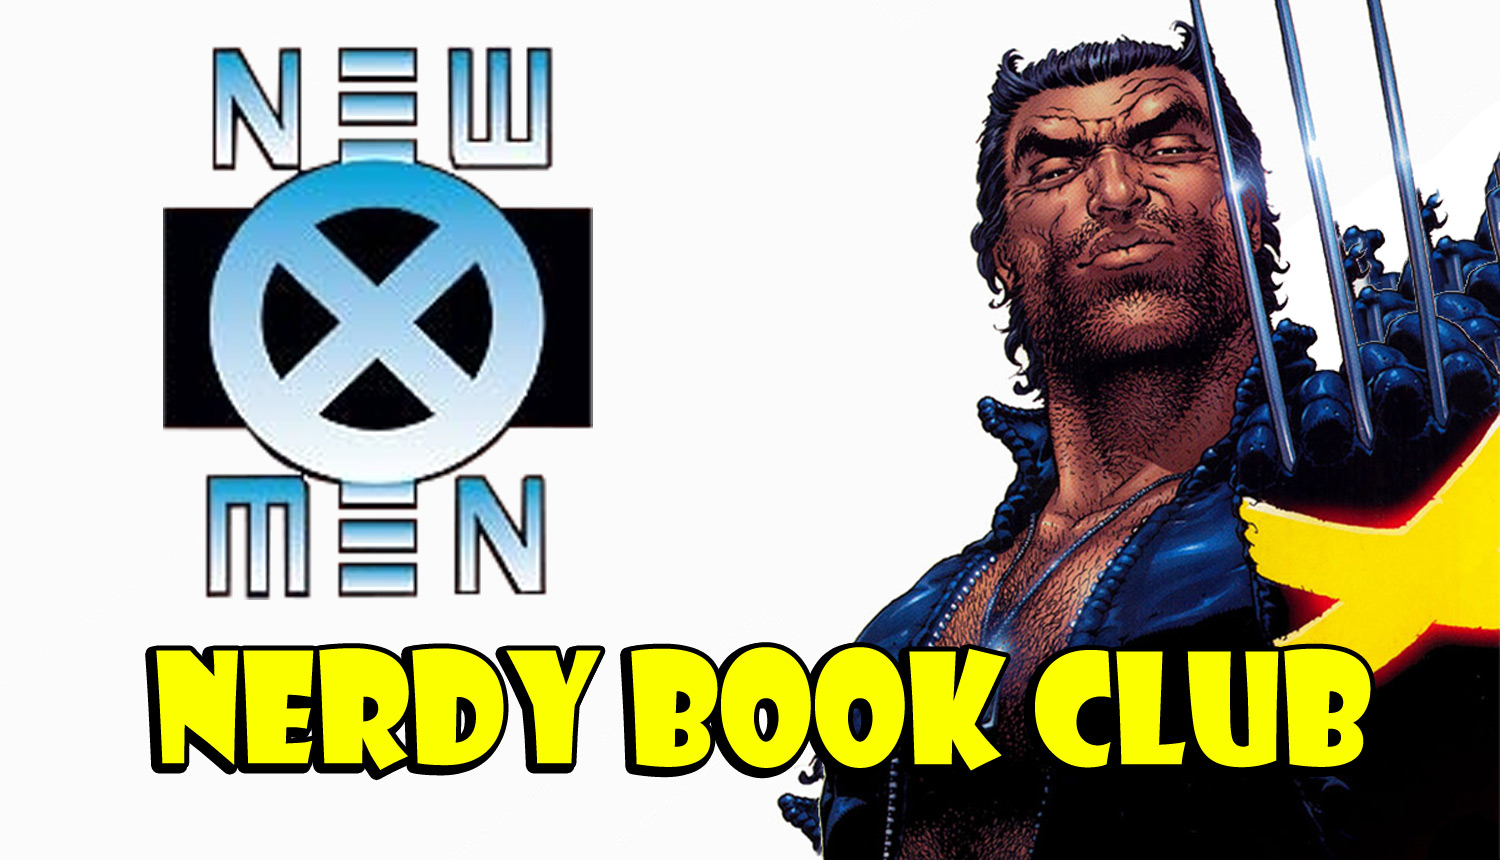 New X-Men - NERDY BOOK CLUB